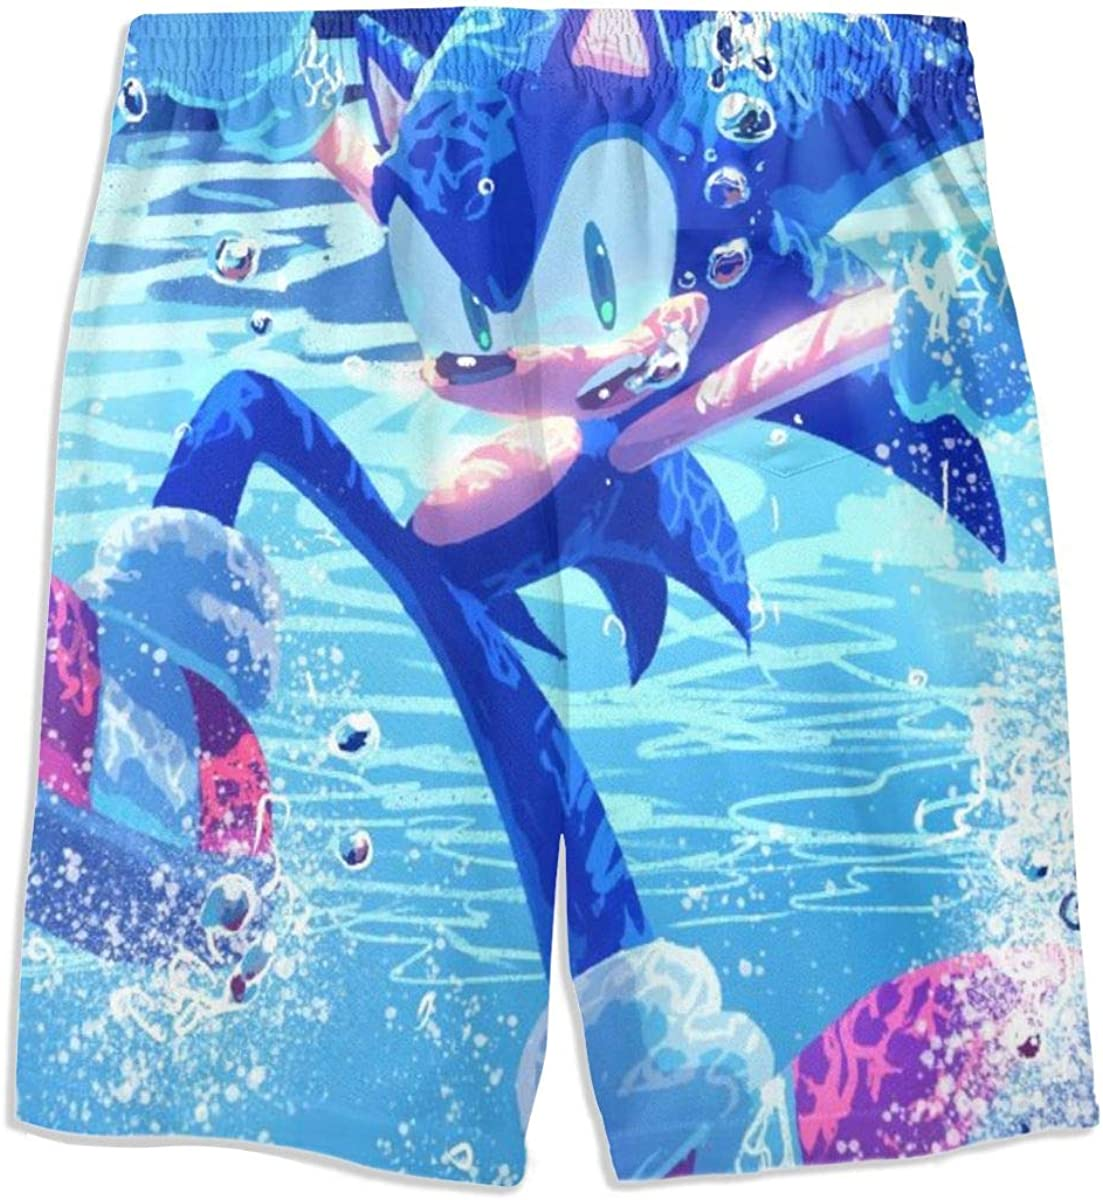 Robprint Sonic-The-Hedgehog Boys Drawsting Swim Trunks Quick Dry Beach Shorts Swimsuit